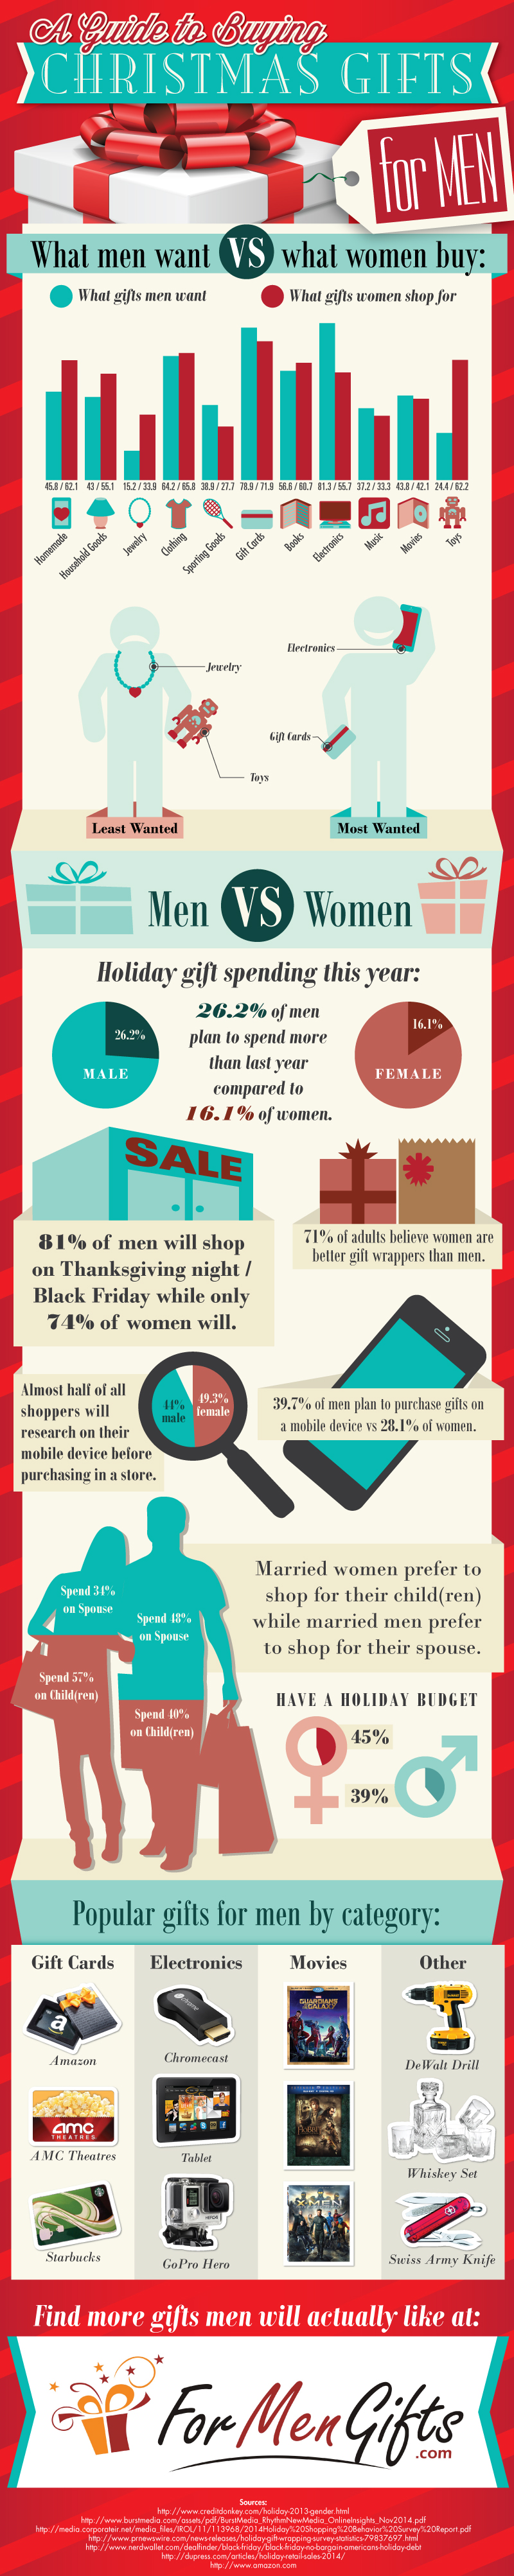 Christmas-Gifts-For-Men-infographic-plaza